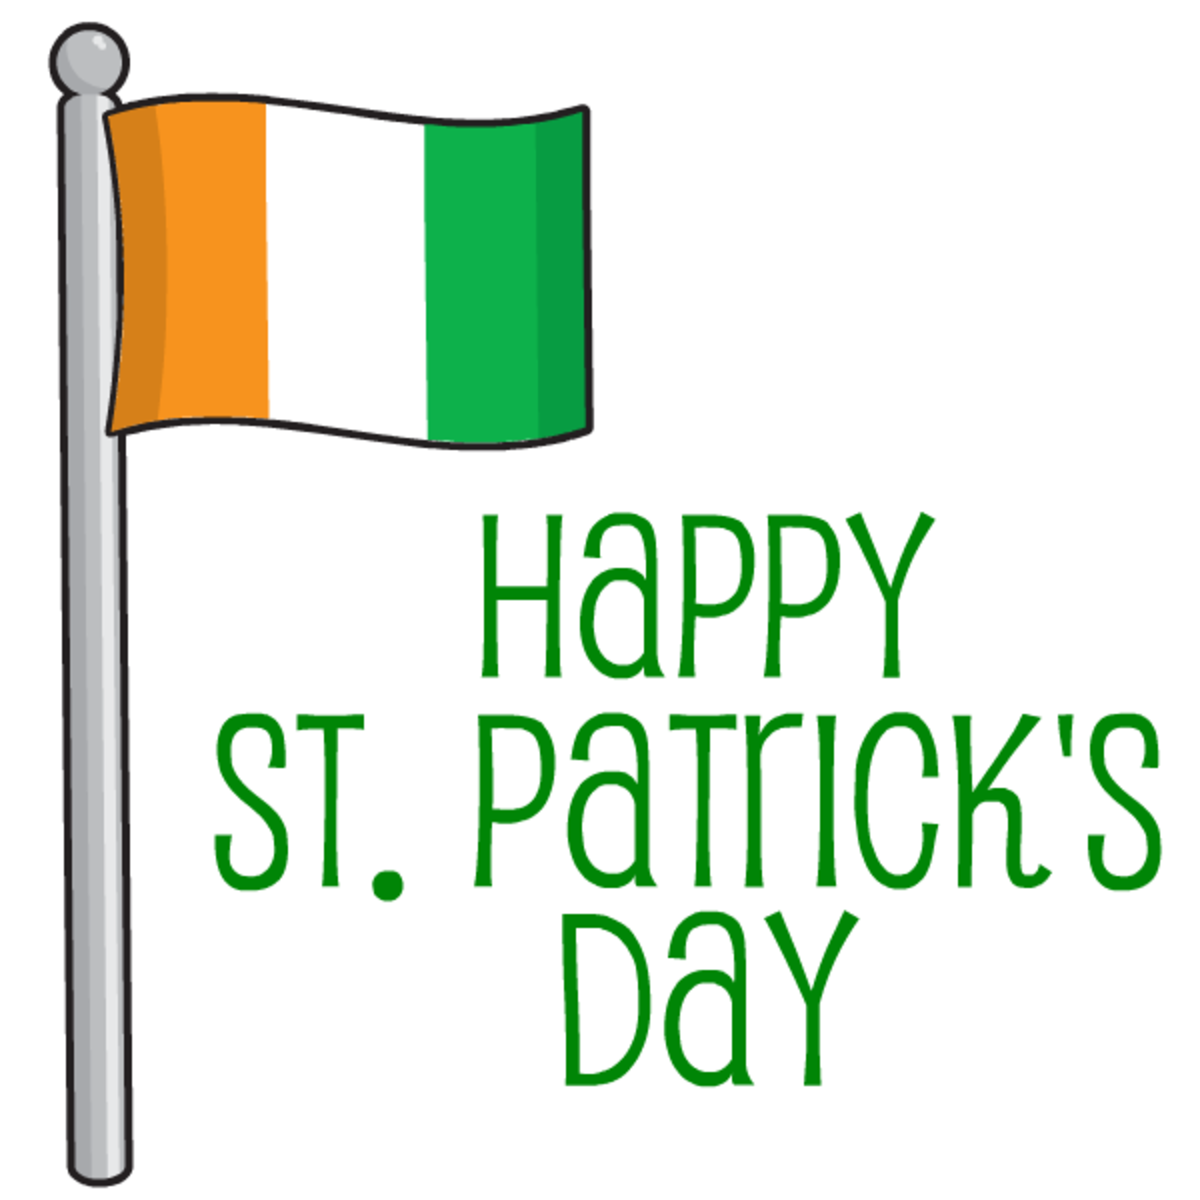 Irish flag with Happy St. Patrick's Day clip art